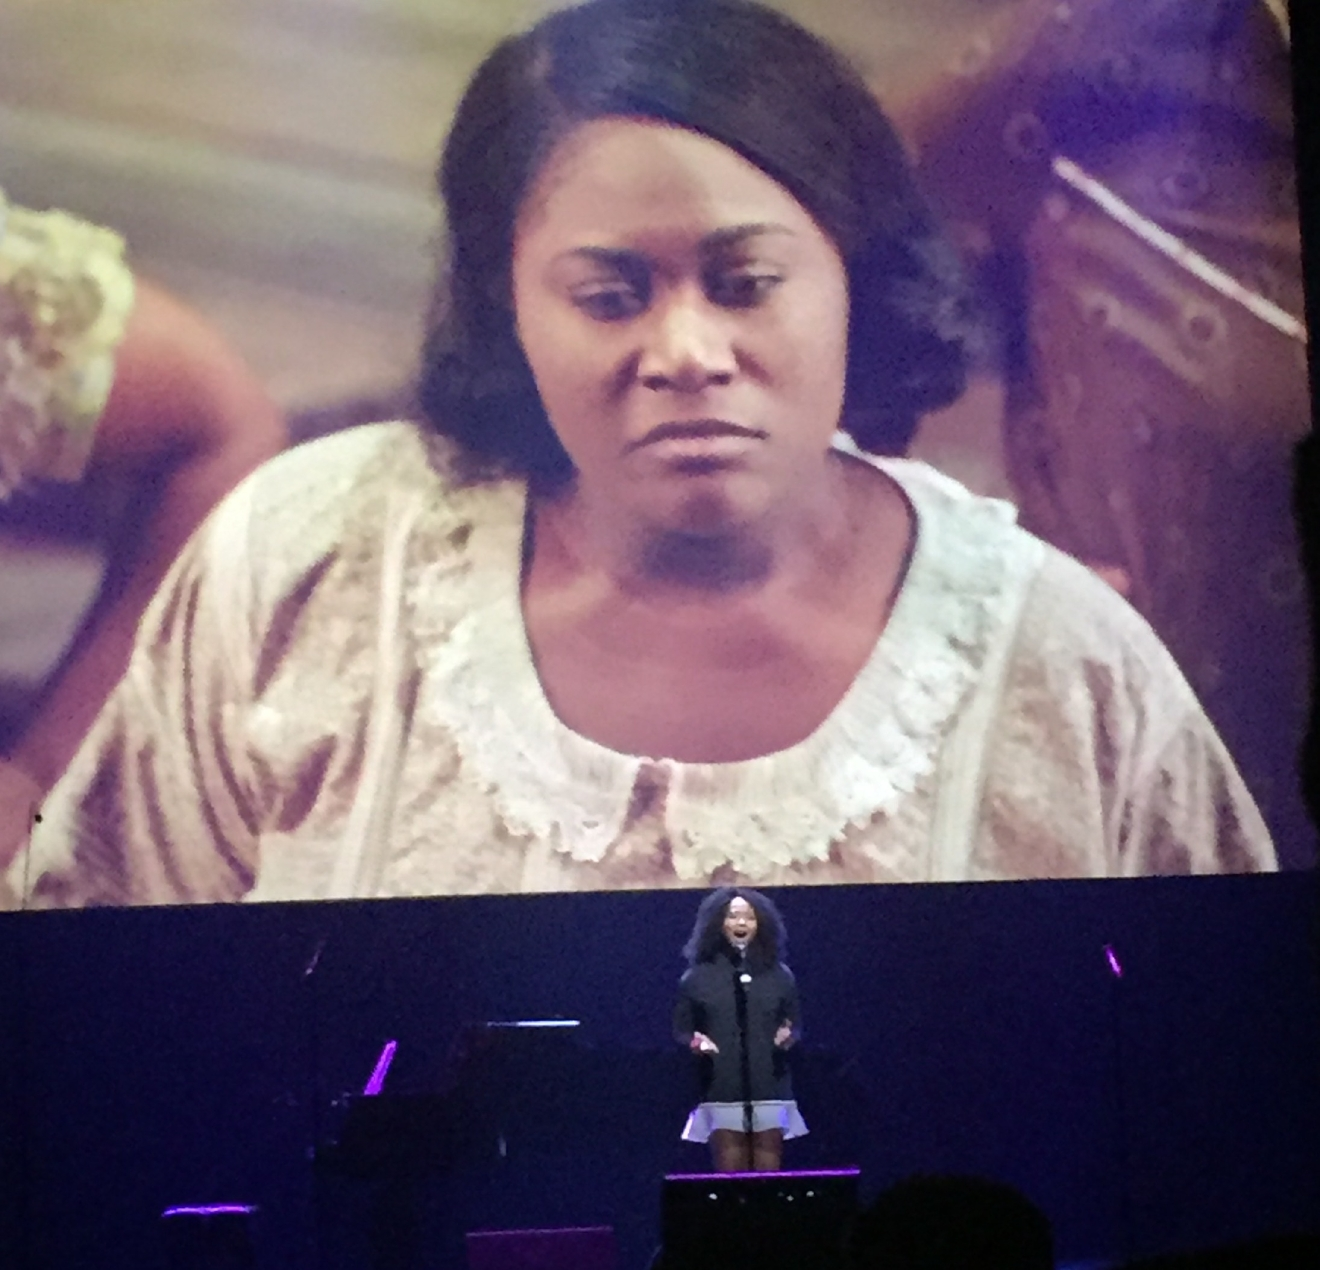 The Color Purple was revealed as an upcoming tour during the Smith Center for the Performing Arts 2017-2018 Broadway series preview Tuesday, Feb. 28, 2017, in Reynolds Hall. Star of the upcoming tour, Adrianna Hicks, made a special performance from the musical. (Jami Seymore | KSNV)